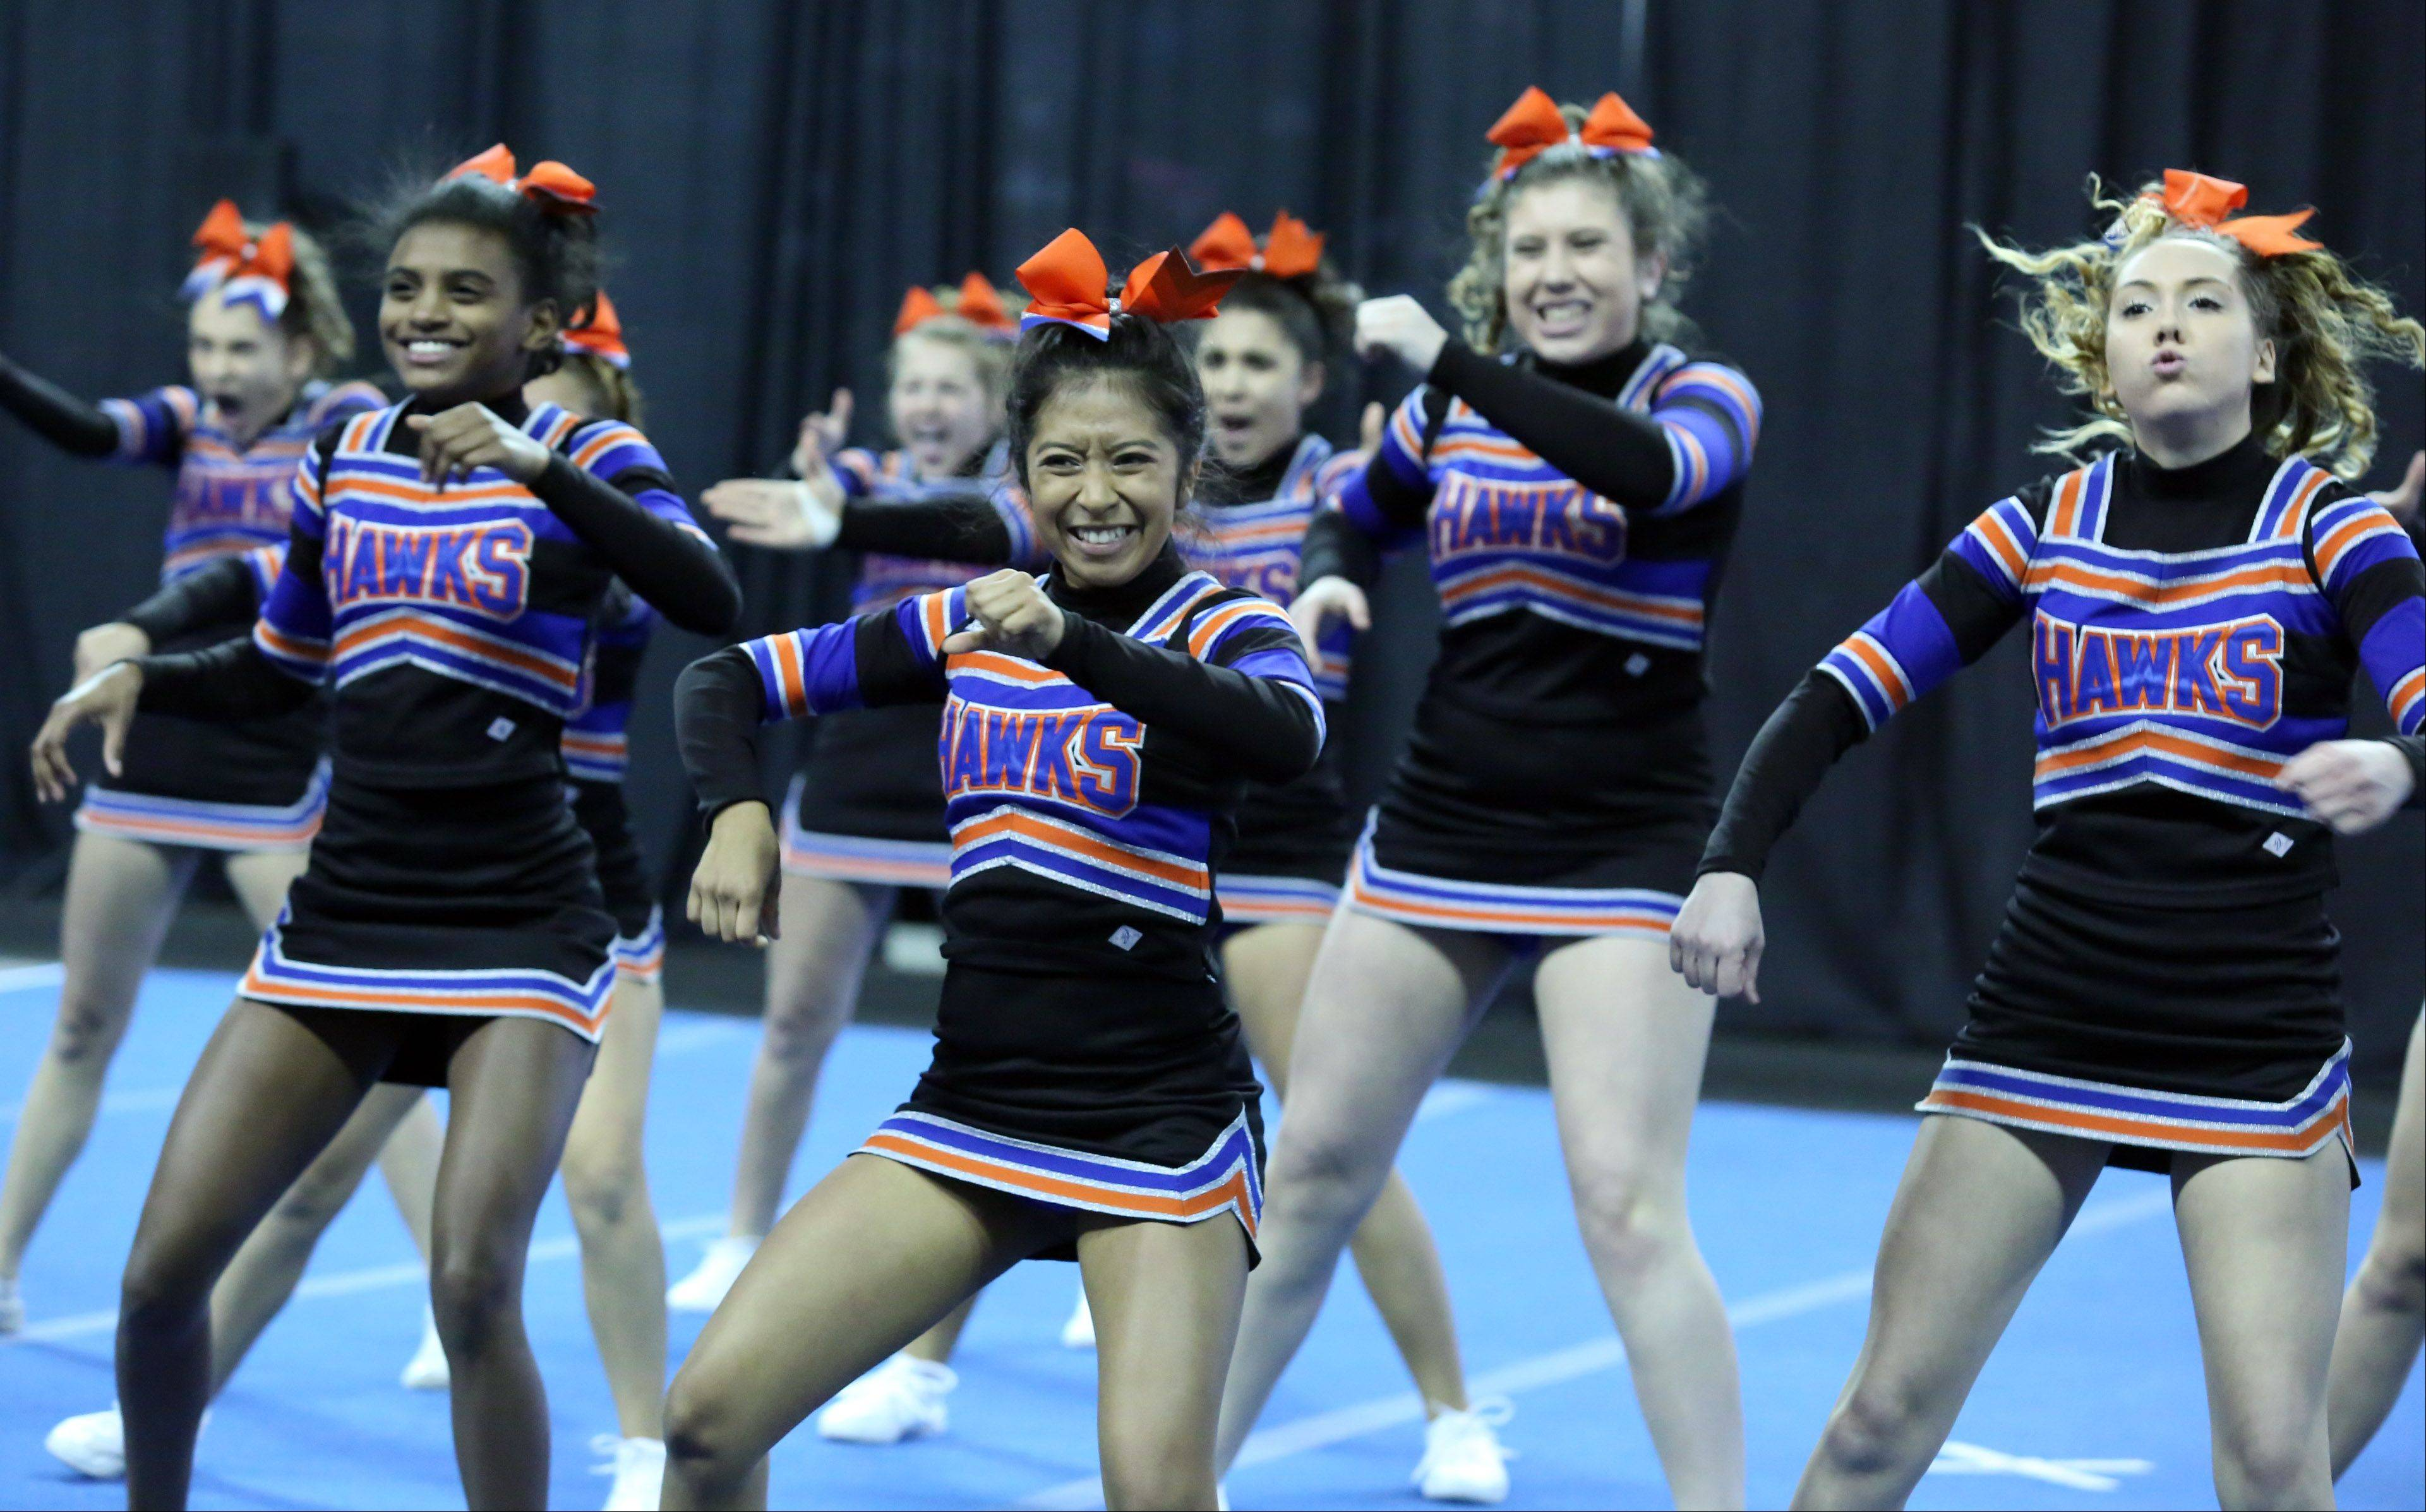 Hoffman Estates High School junior varsity cheer team competes in the IHSA Winter Meltdown Cheerleading and Dance Competition at Sears Centre Arena on Saturday in Hoffman Estates.